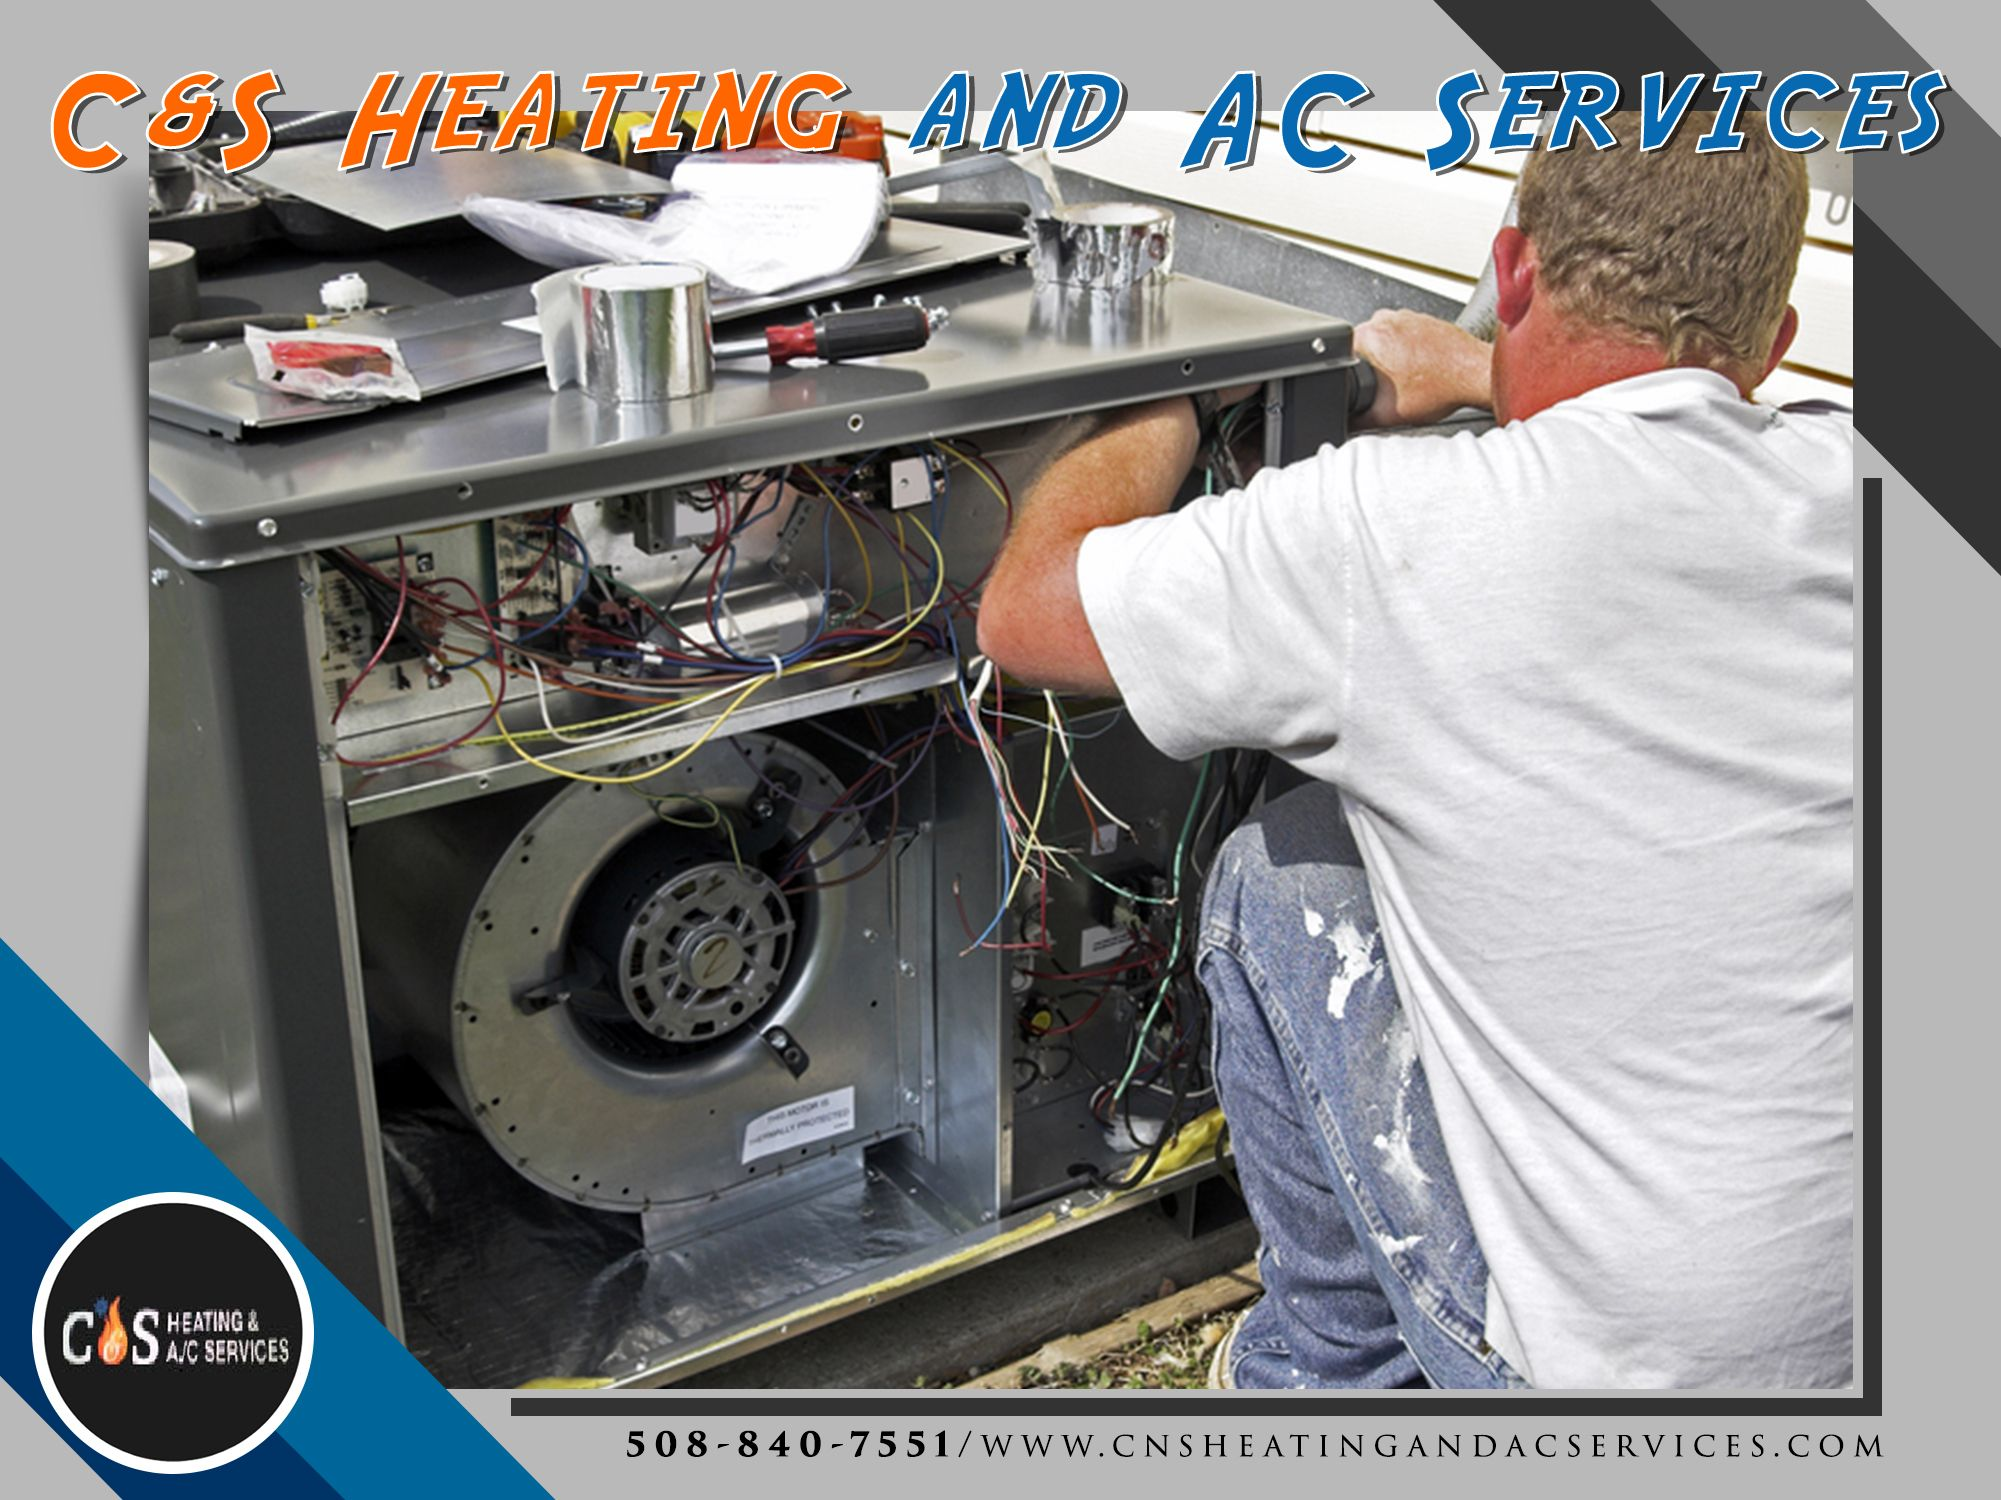 At C&S Heating and AC Services, we make sure you always